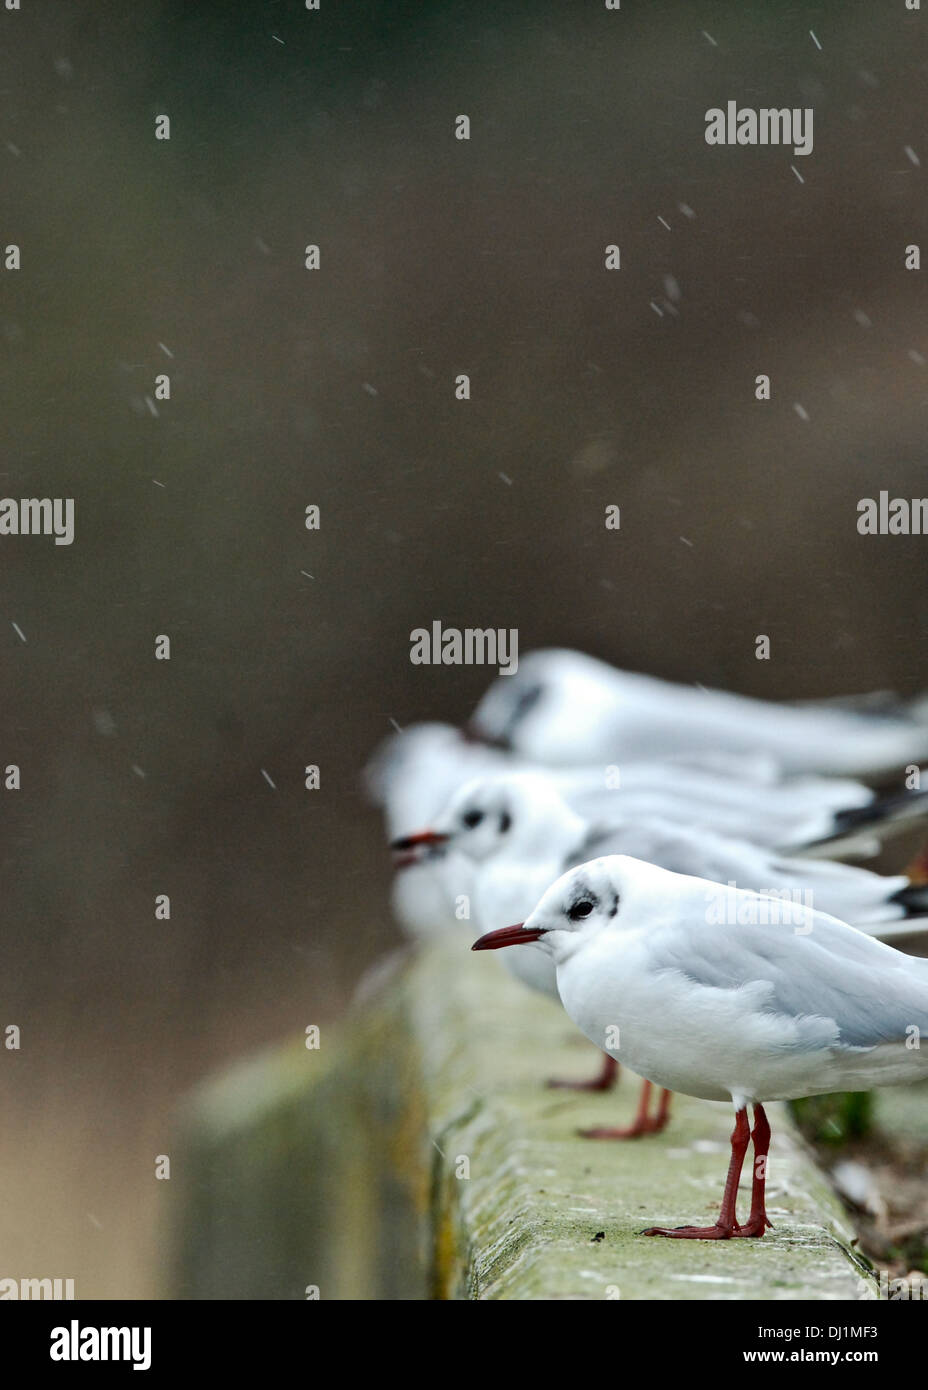 Black Headed Gulls (Chroicocephalus ridibundus) sitting in a line on a wall in the sleet and snow, Cornwall, England. - Stock Image